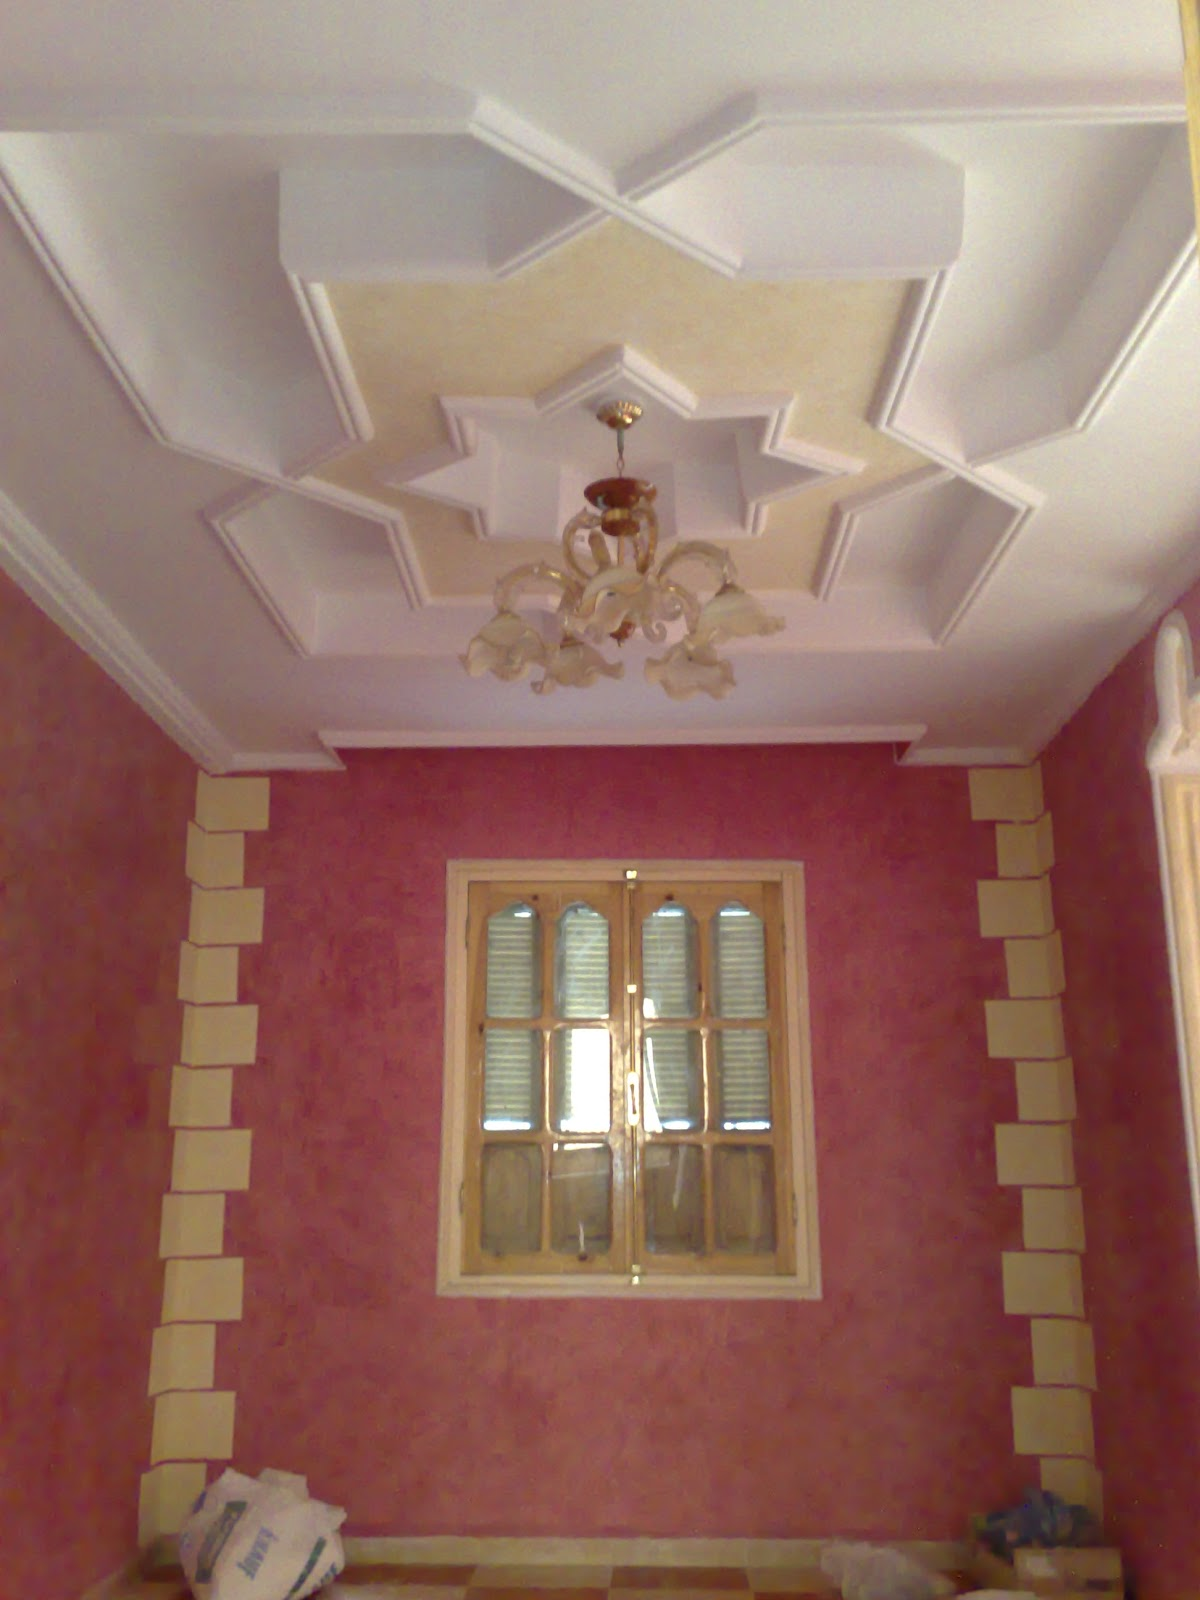 Decoration plafond platre platre for Decoration platre marocain 2012